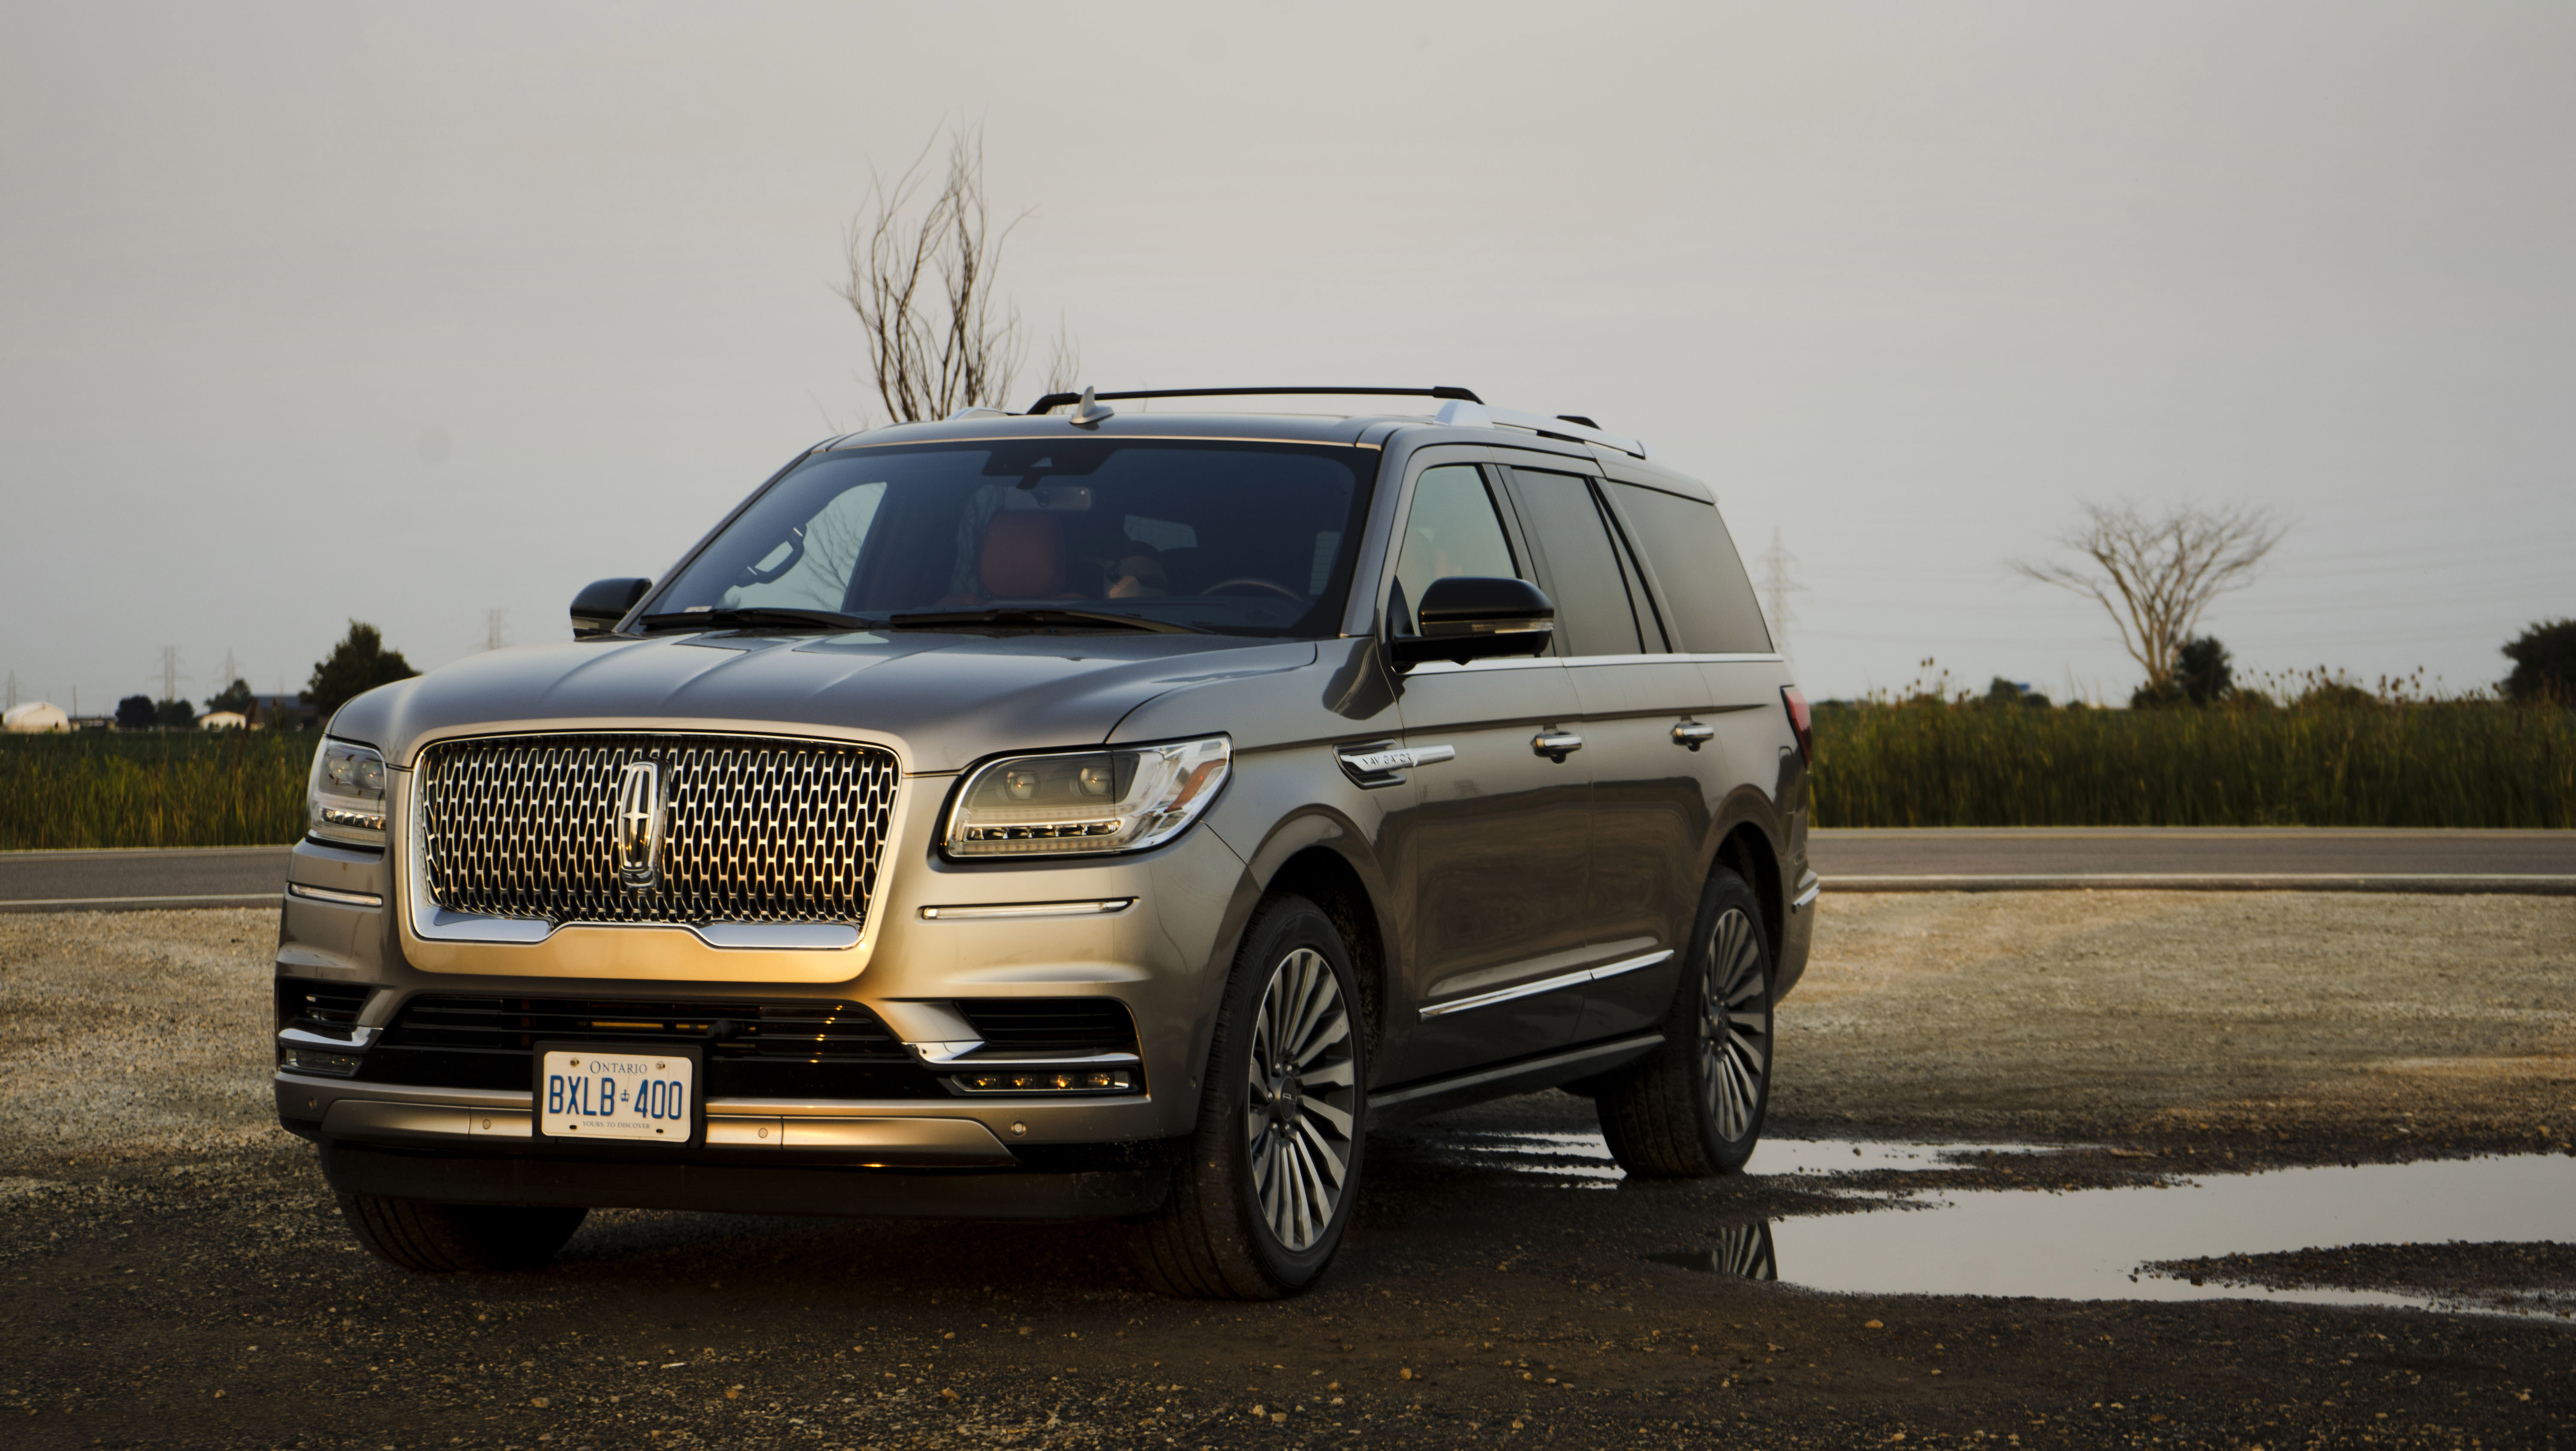 Second Hand Saturn S Series Transmission Lawsuit About Review 2018 Lincoln Navigator